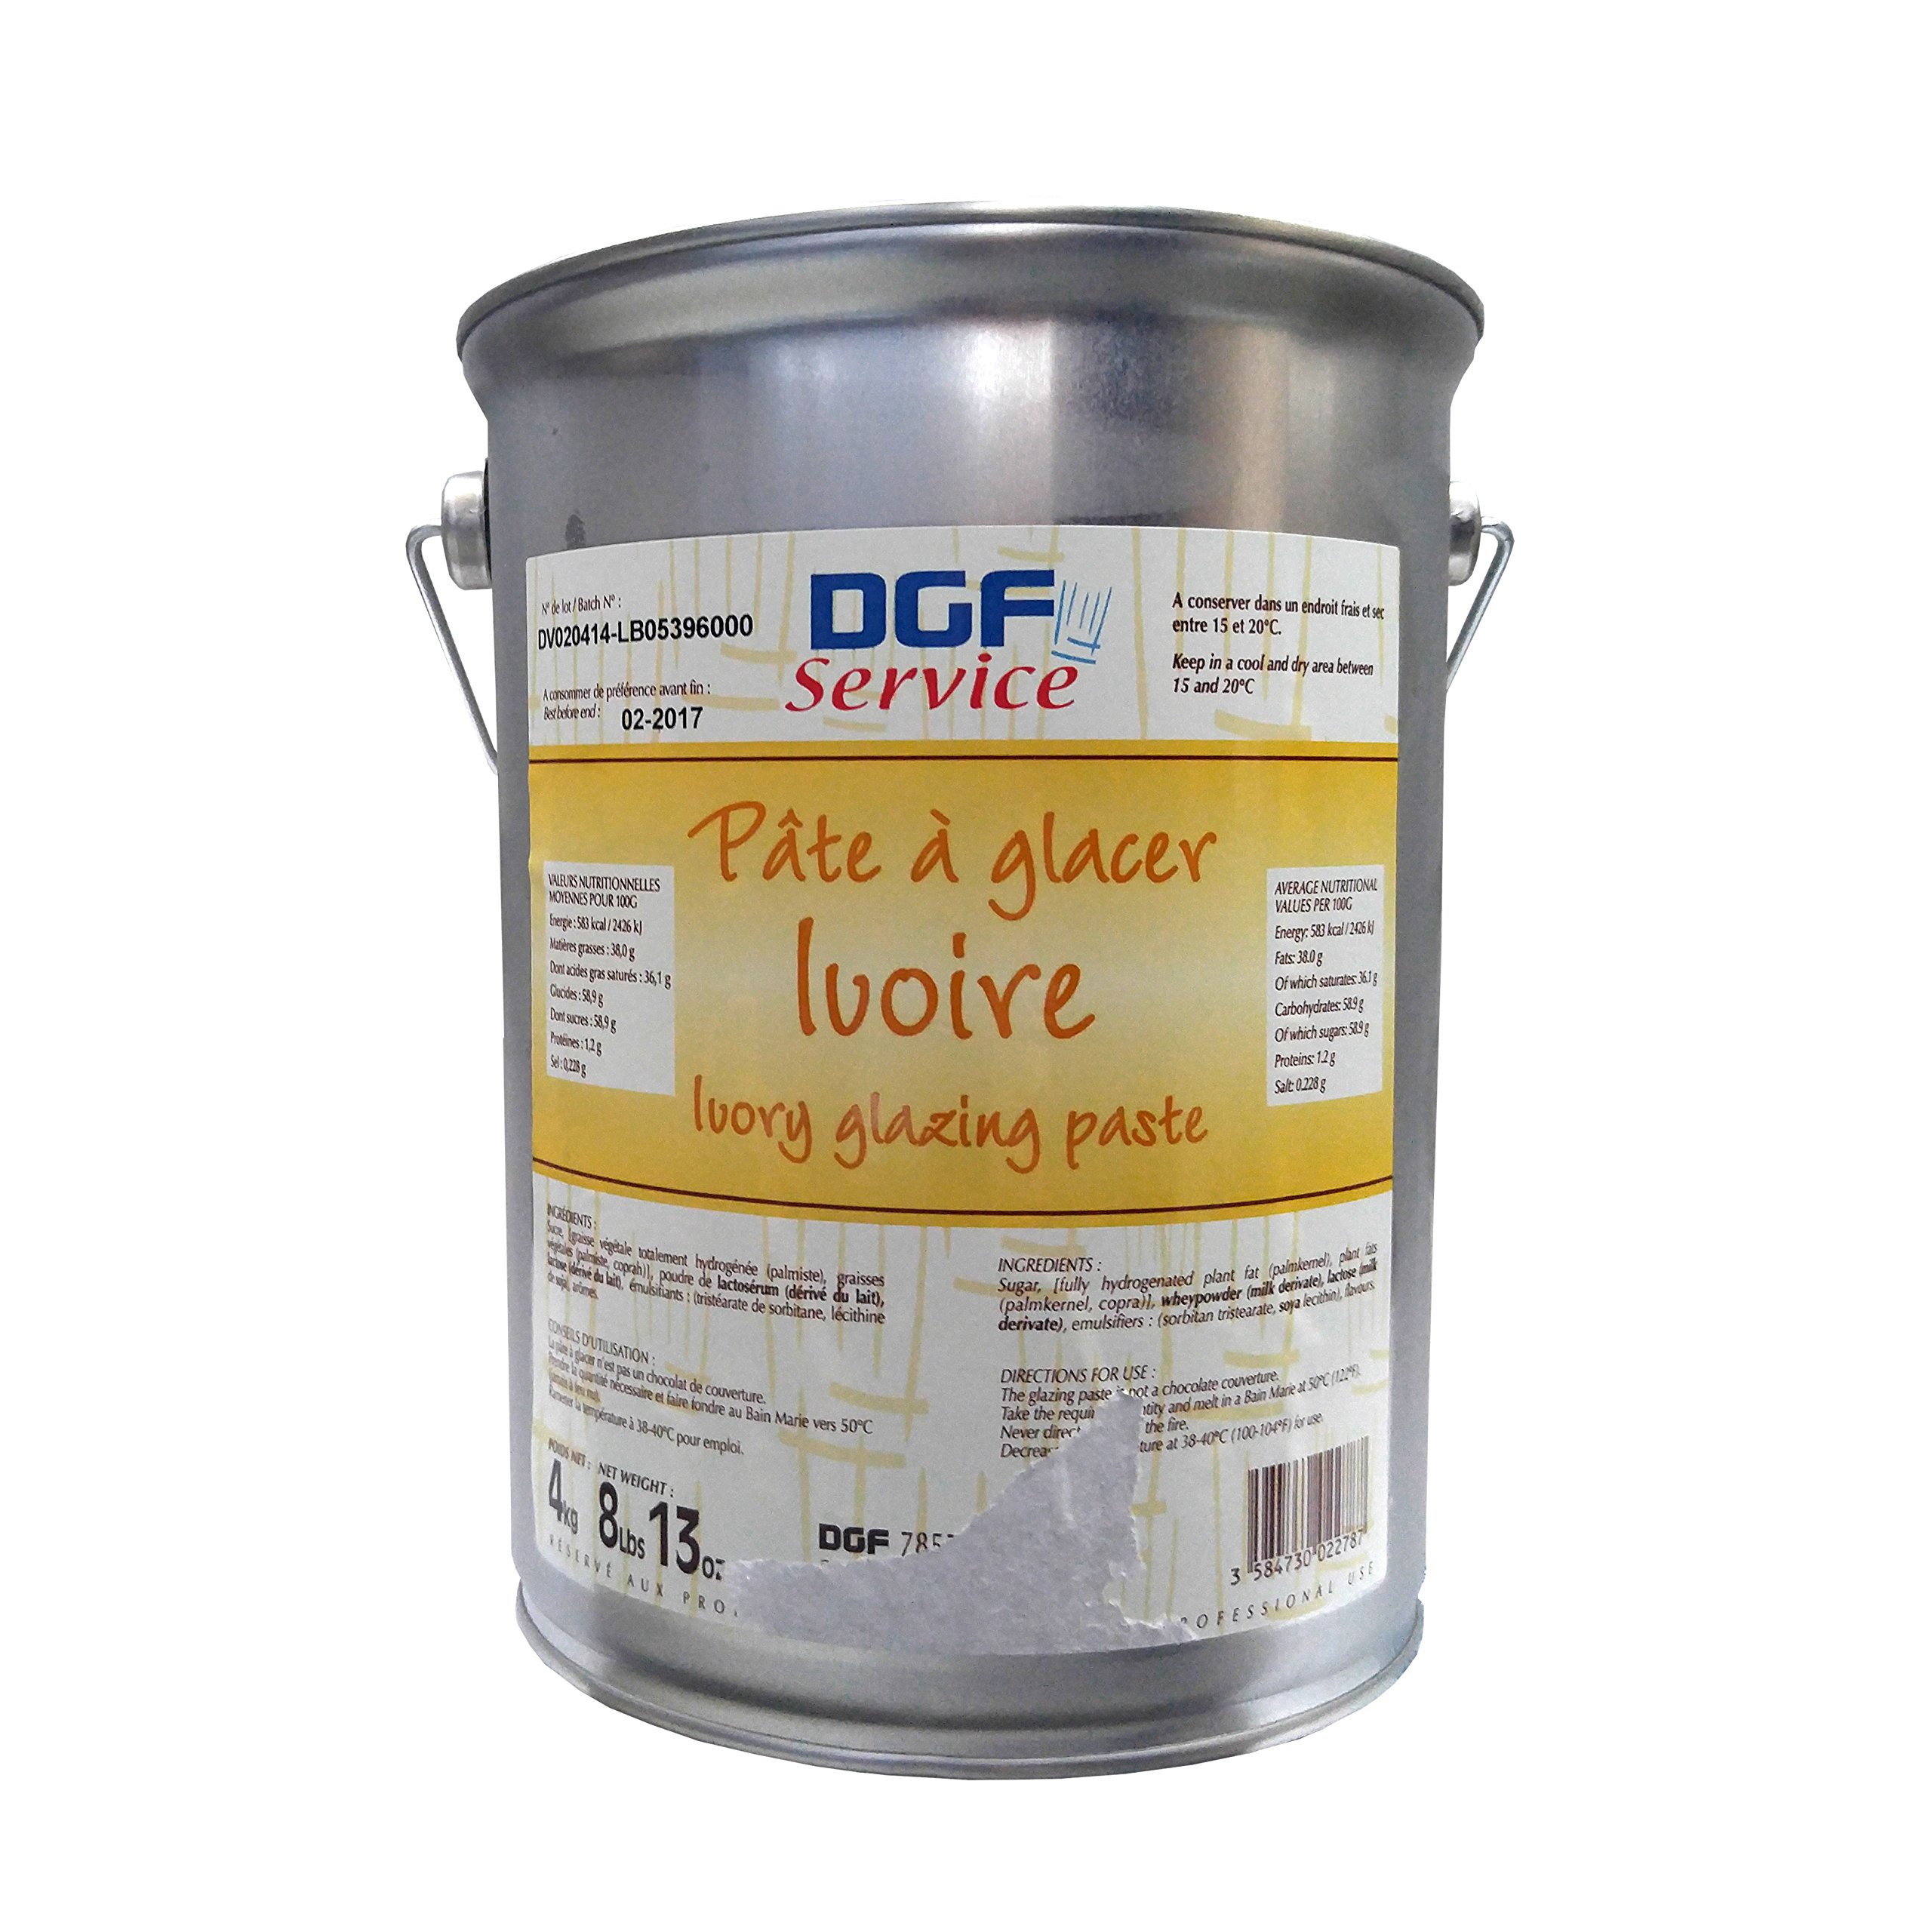 Pate A Glacer Ivoire, White Chocolate Glazing Paste - 8.8 Lb Pail